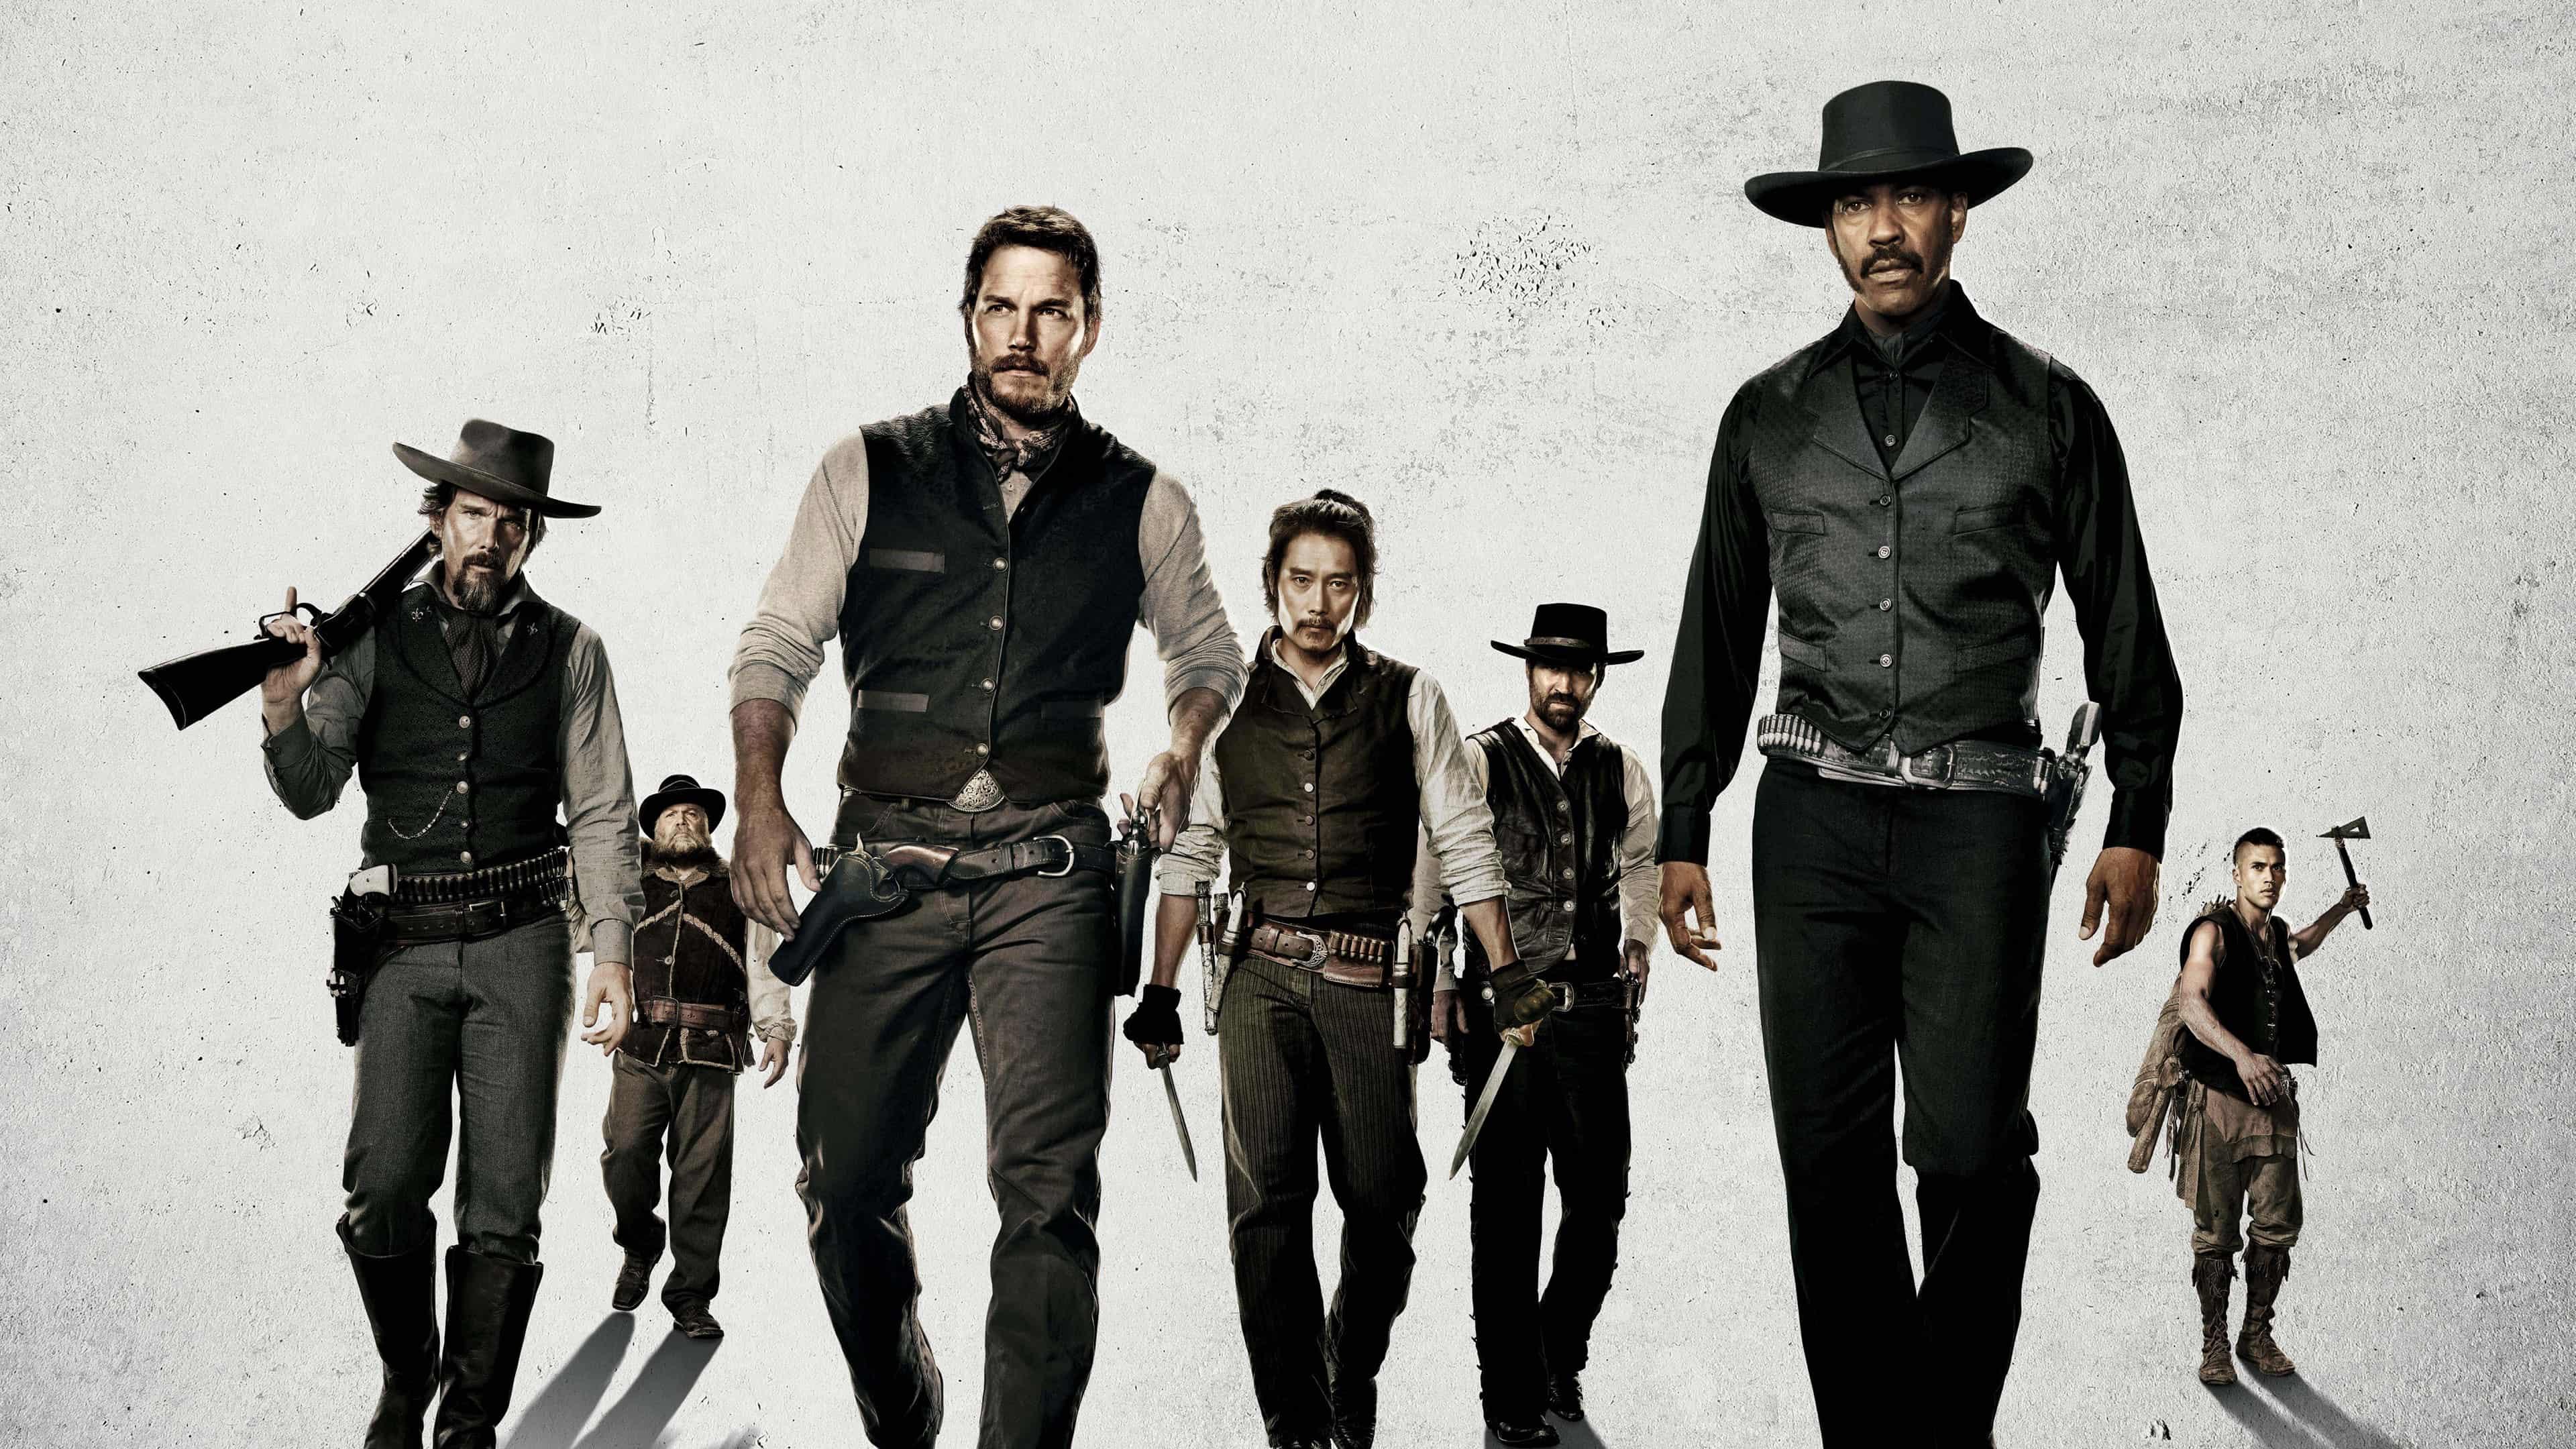 the magnificent seven uhd 4k wallpaper